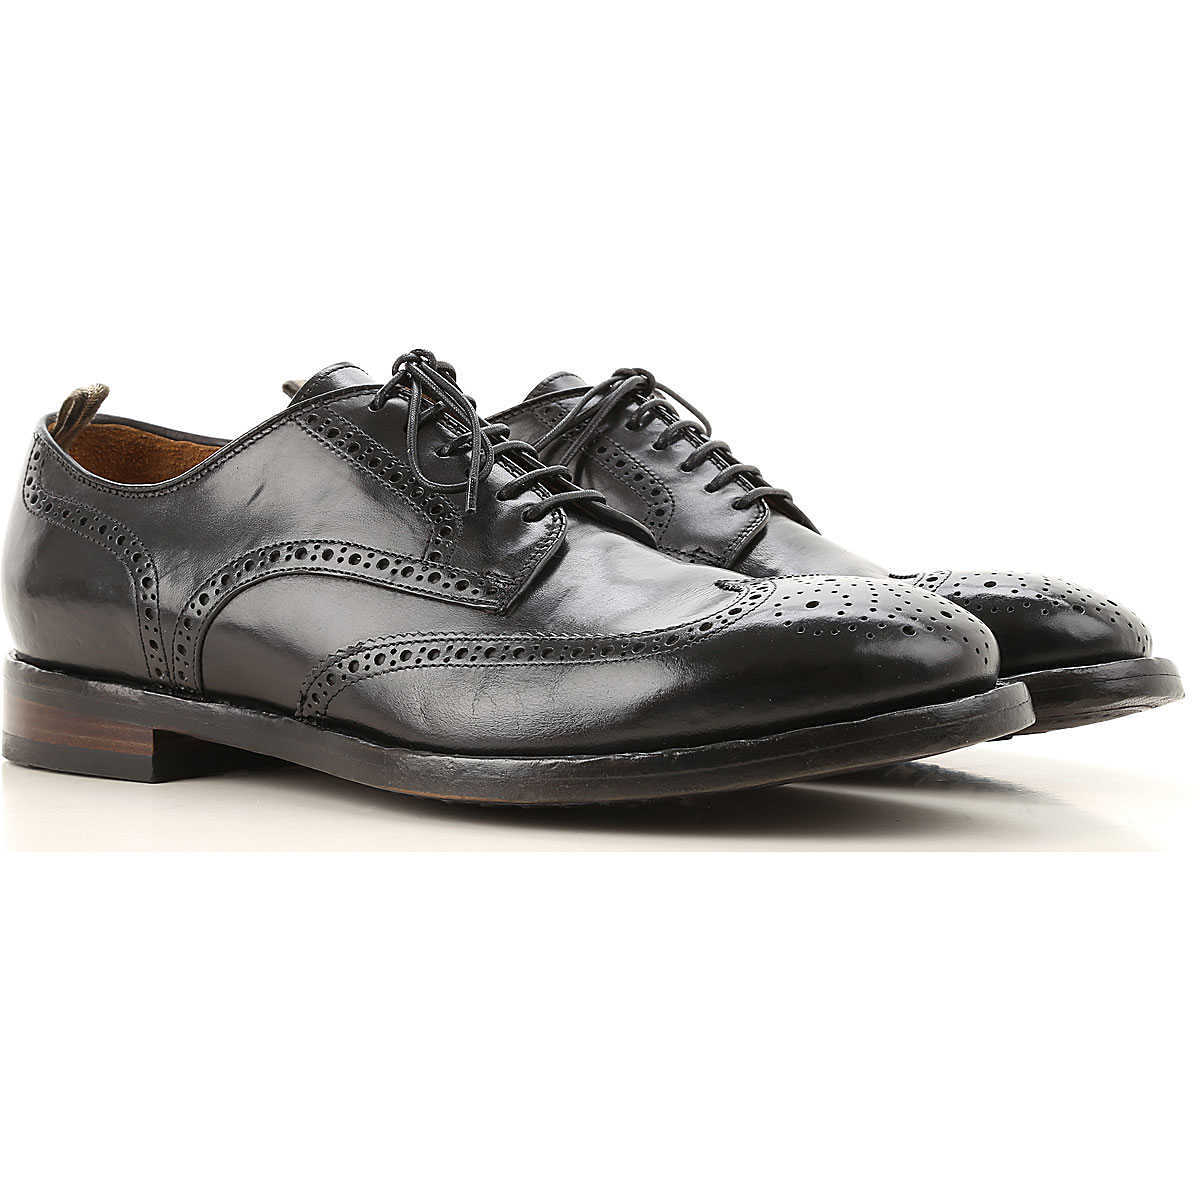 Officine Creative Lace Up Shoes for Men Oxfords 6 7 8 9 Derbies and Brogues UK - GOOFASH